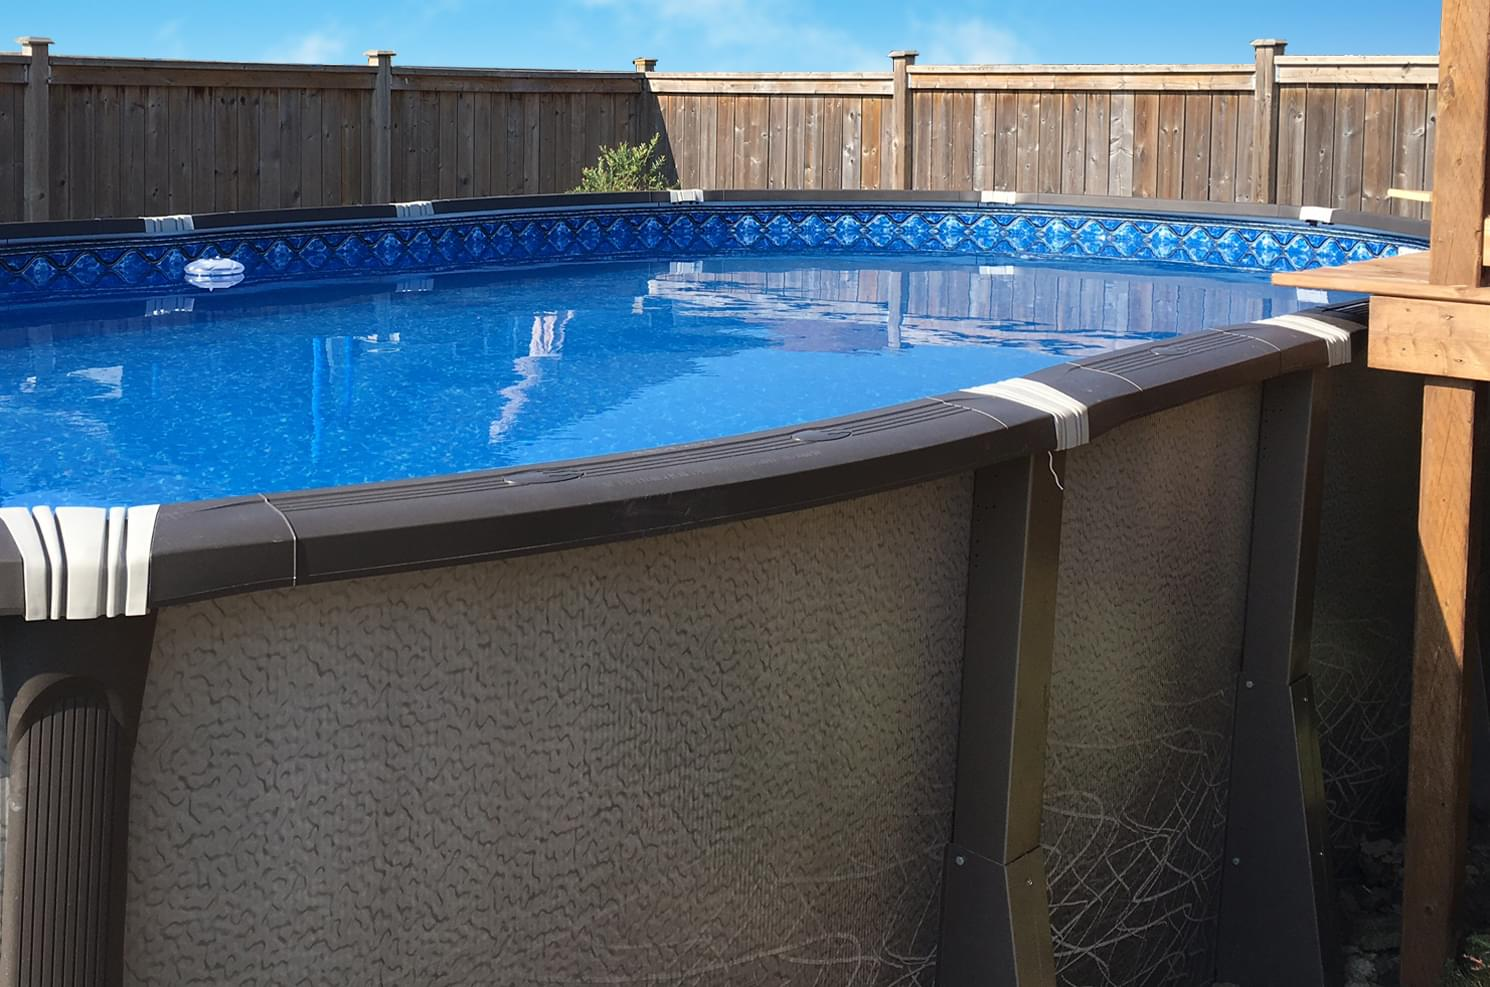 Above ground pools pool supplies canada for Pool supplies